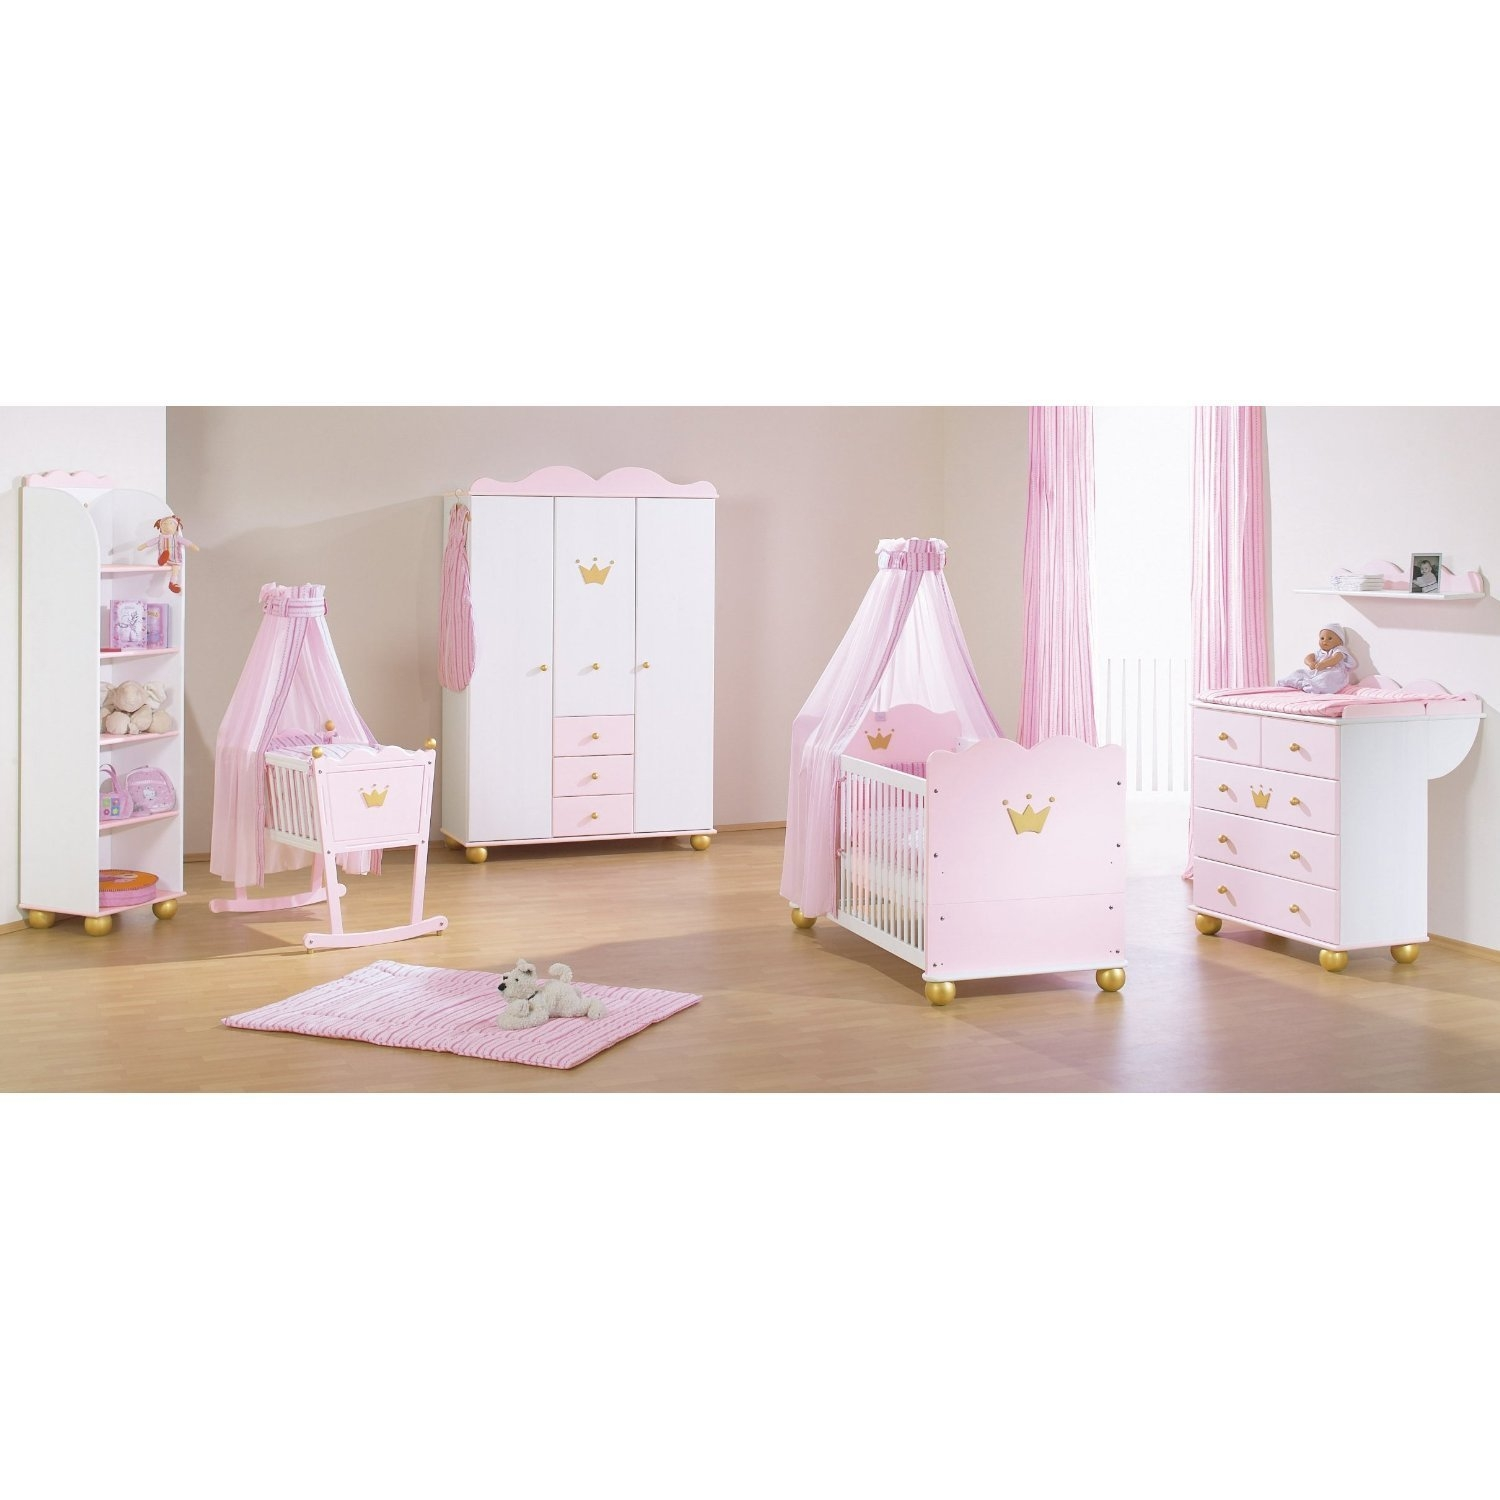 chambre petite fille mobilier princesse accueil design. Black Bedroom Furniture Sets. Home Design Ideas